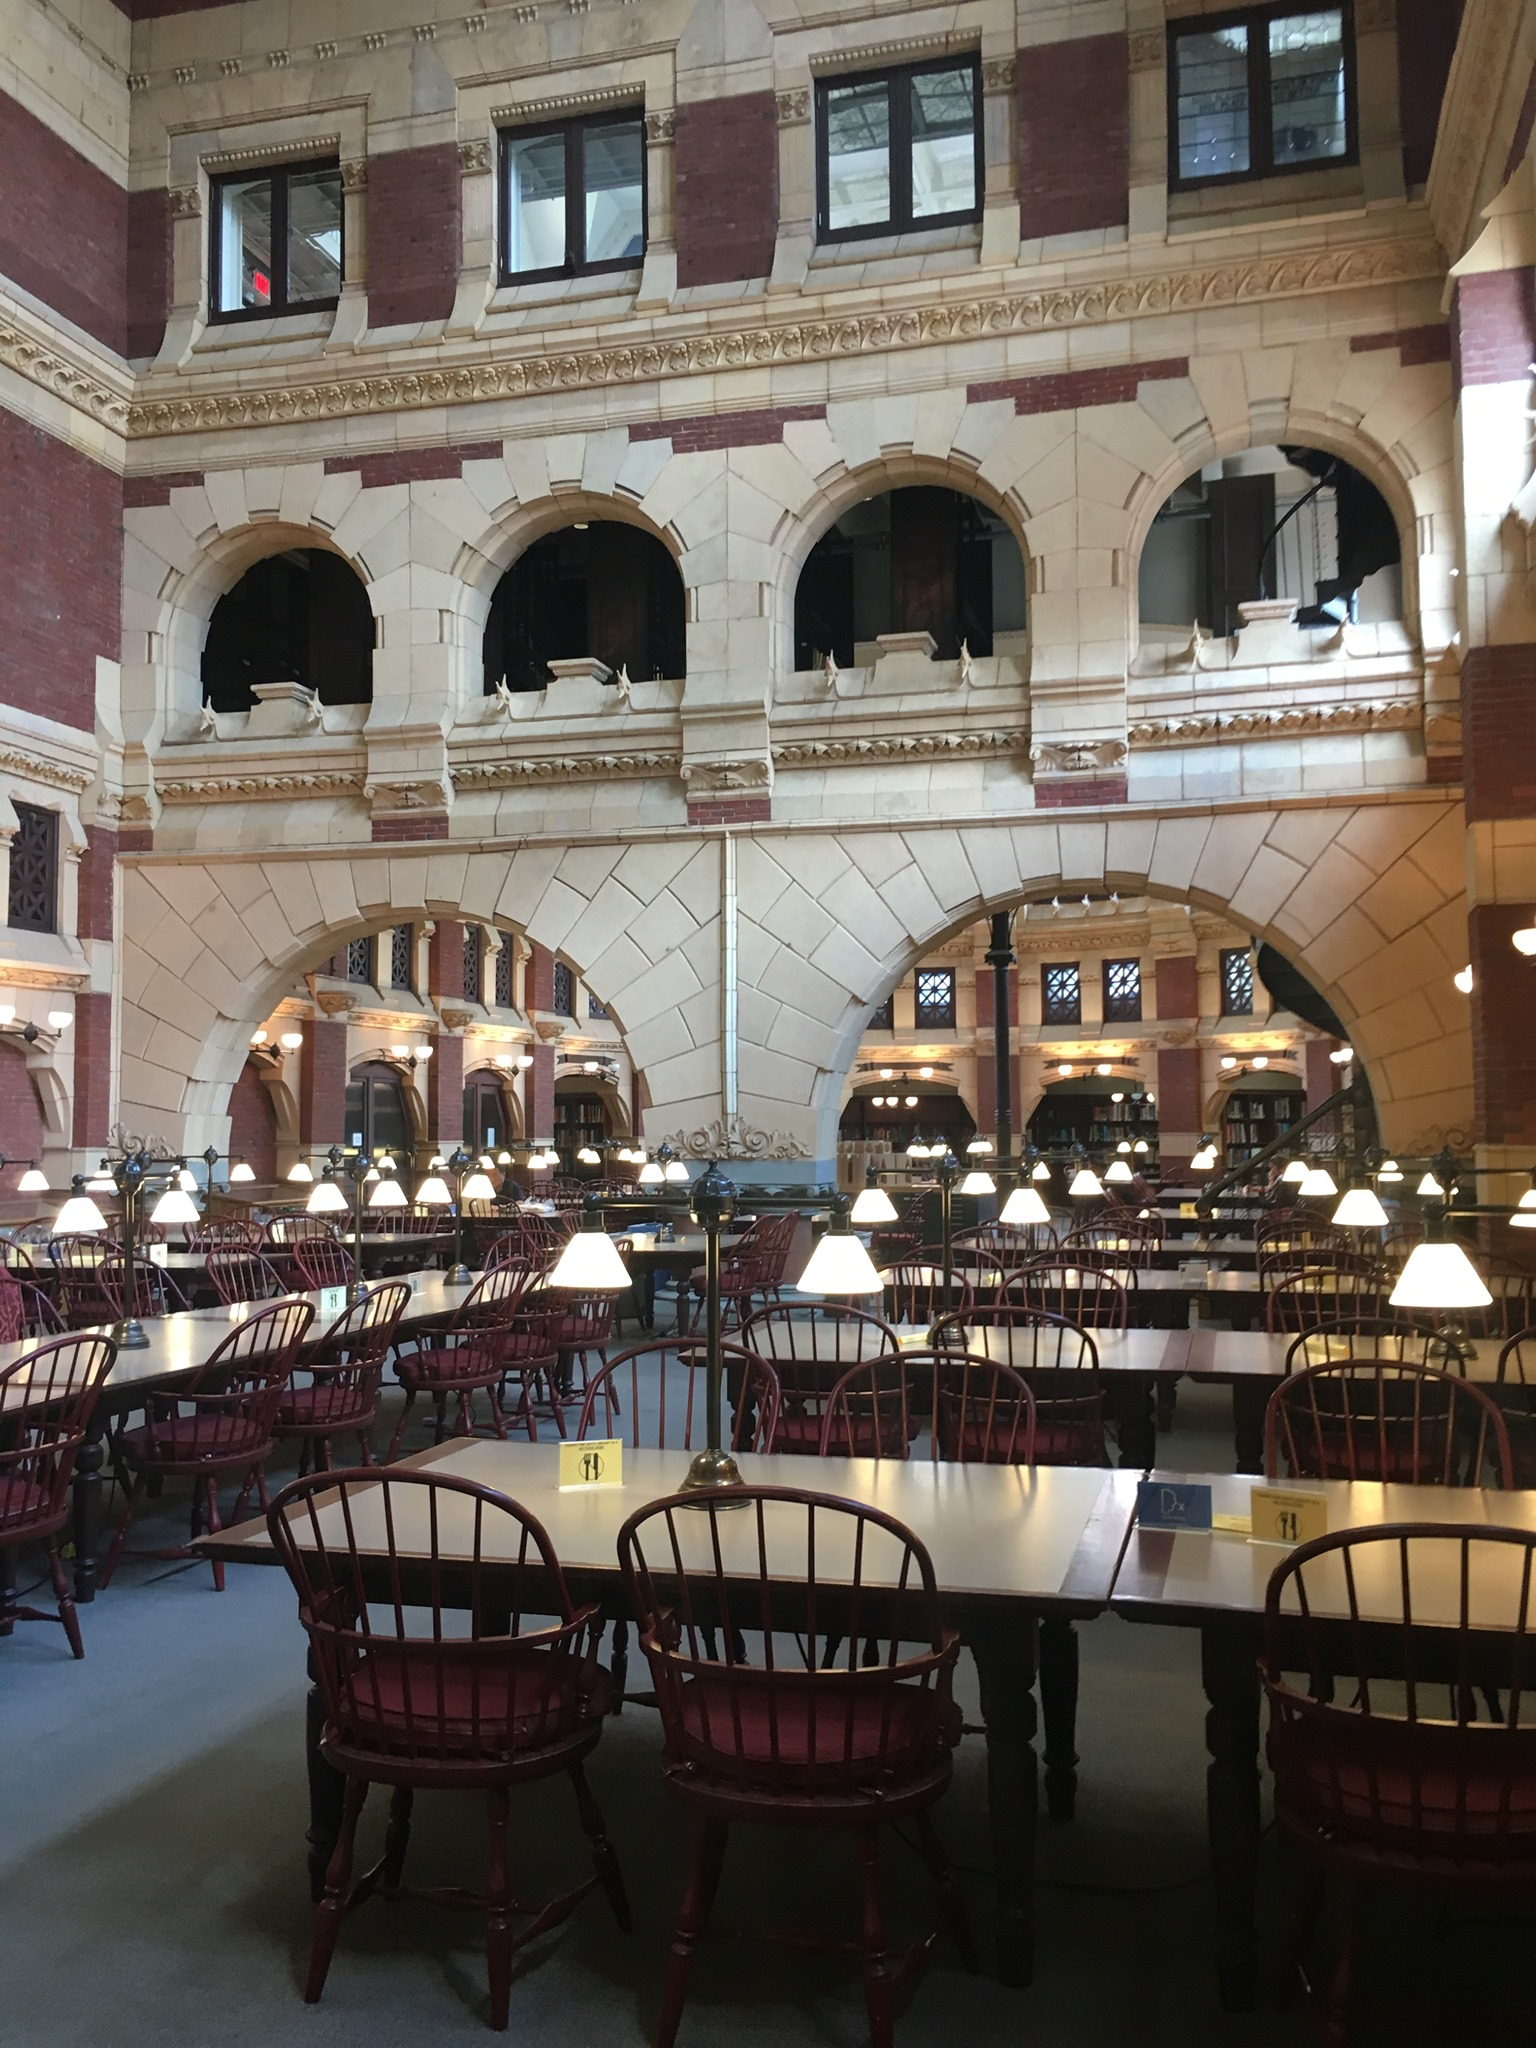 Interior of the Fisher Fine Arts Library at the University of Pennsylvania in Philadelphia